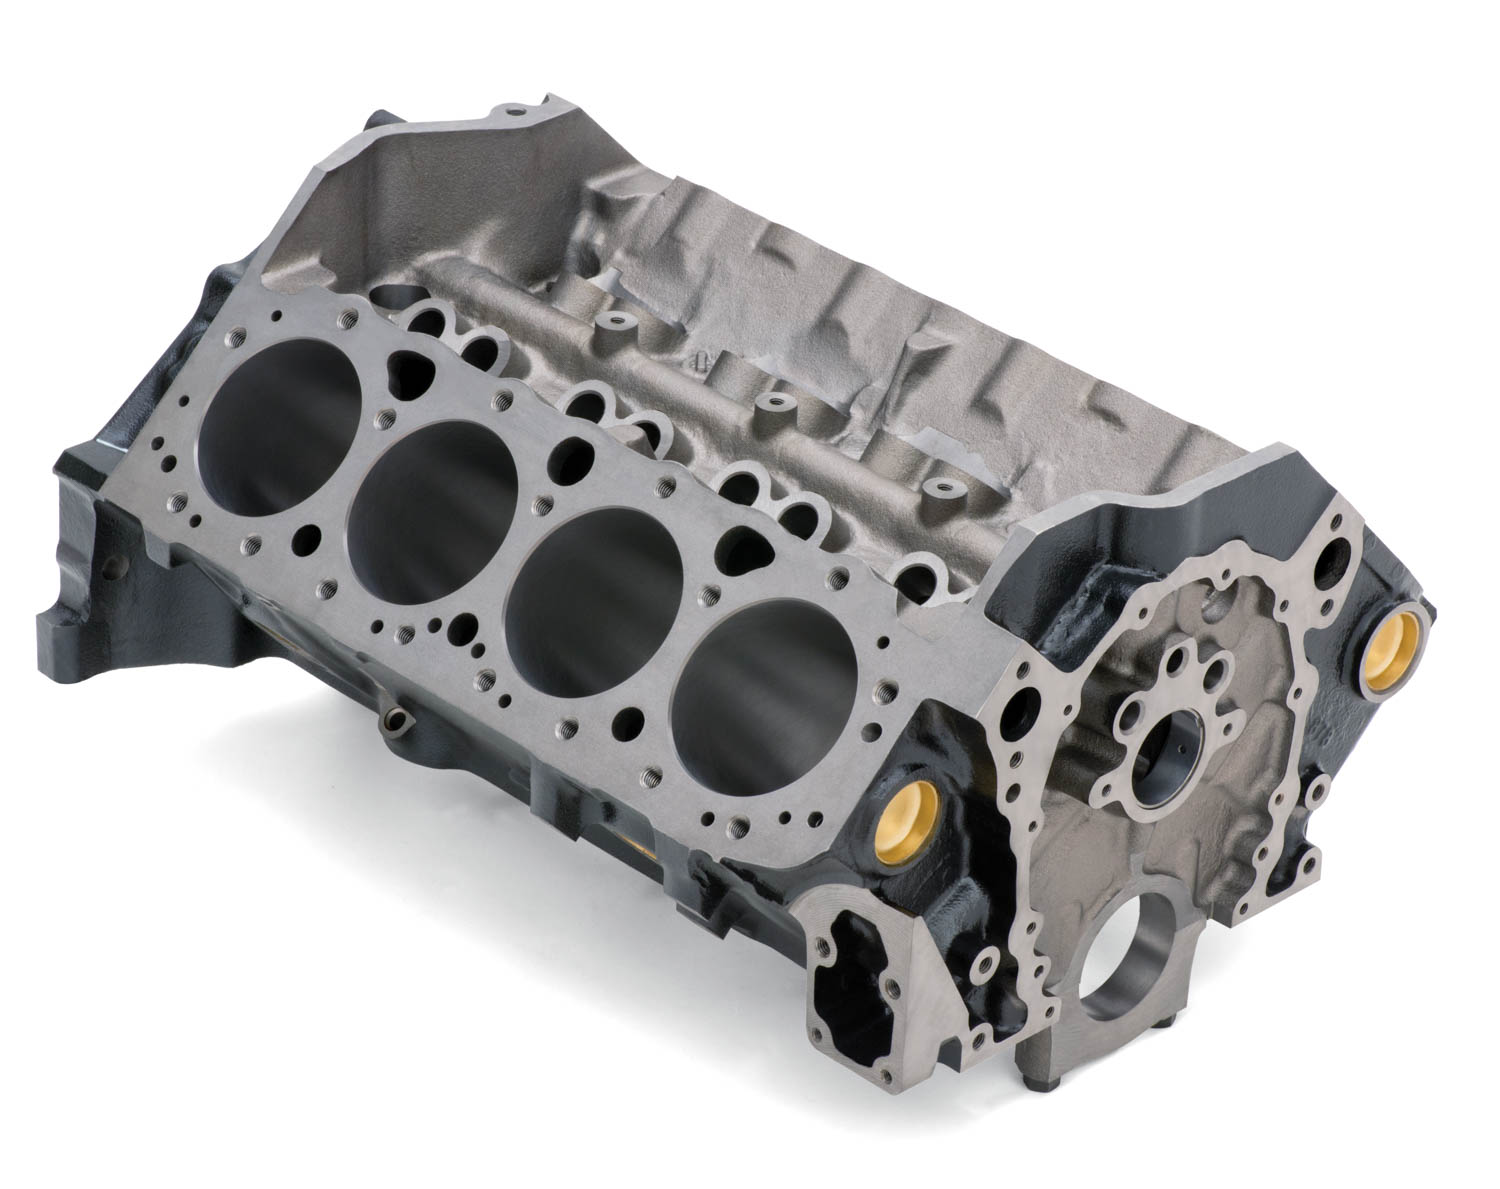 Every small-block generation since the original has retained the 4.40-inch bore centers and cam-in-block design.